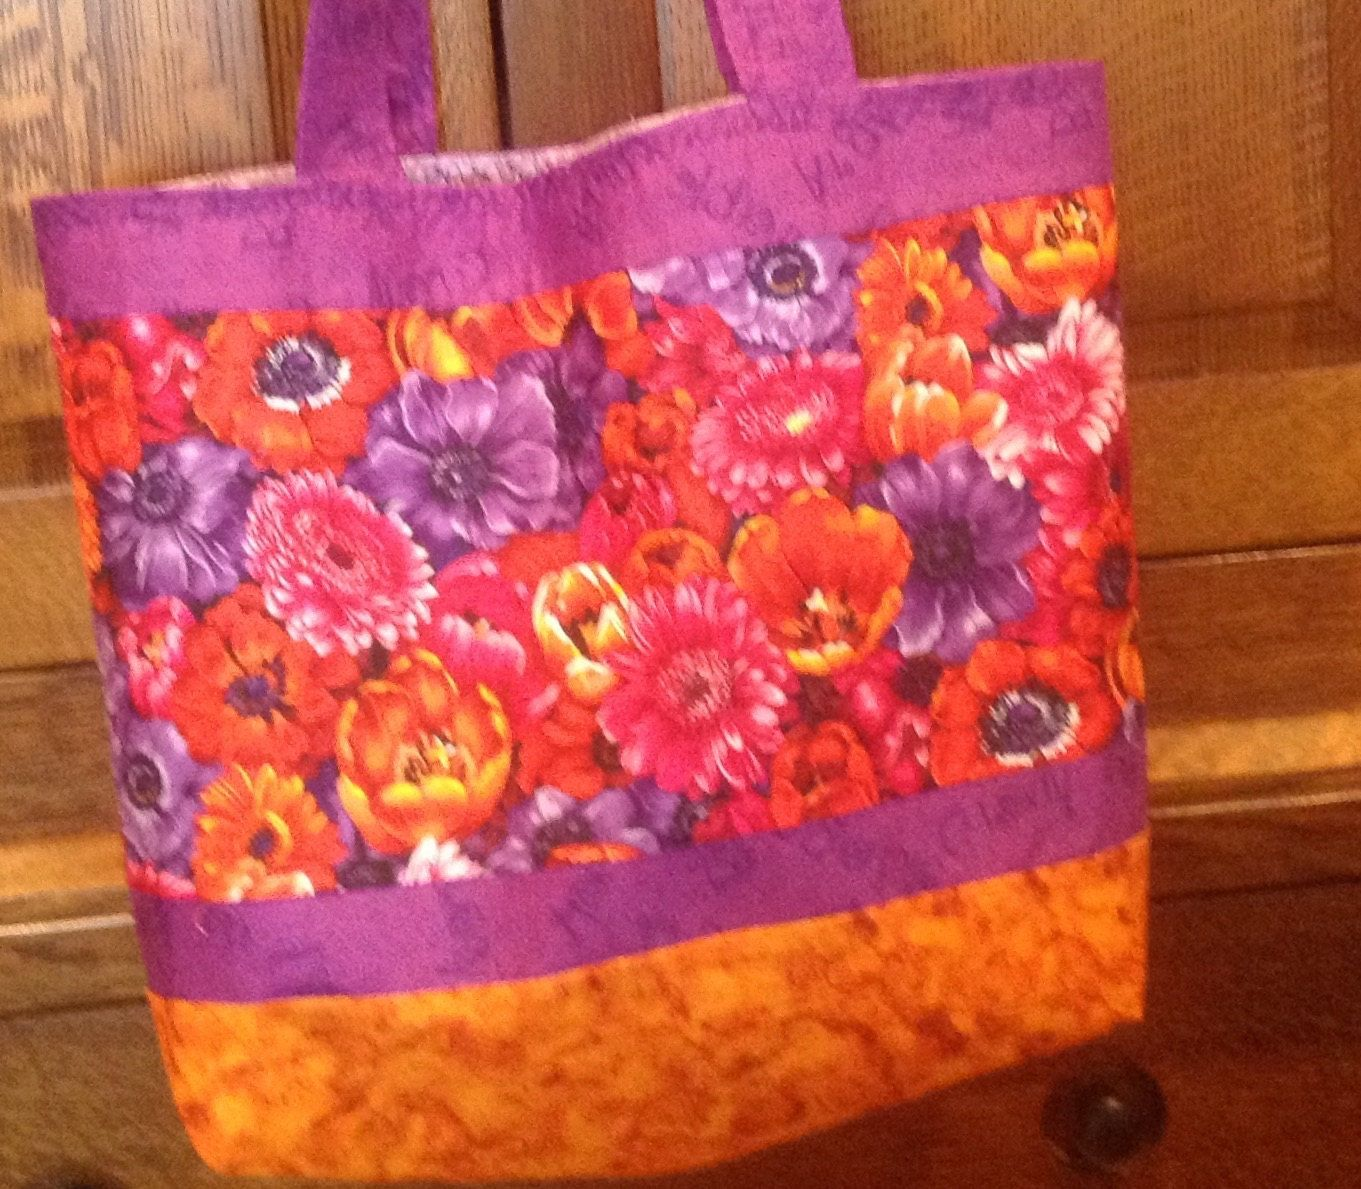 Purple/orange pink floral tote/market bag, 17 in.W x13 in. H x 4 in.D, open top, lined, washable, shoulder carry, decorative stitching by HarneysHandmades on Etsy